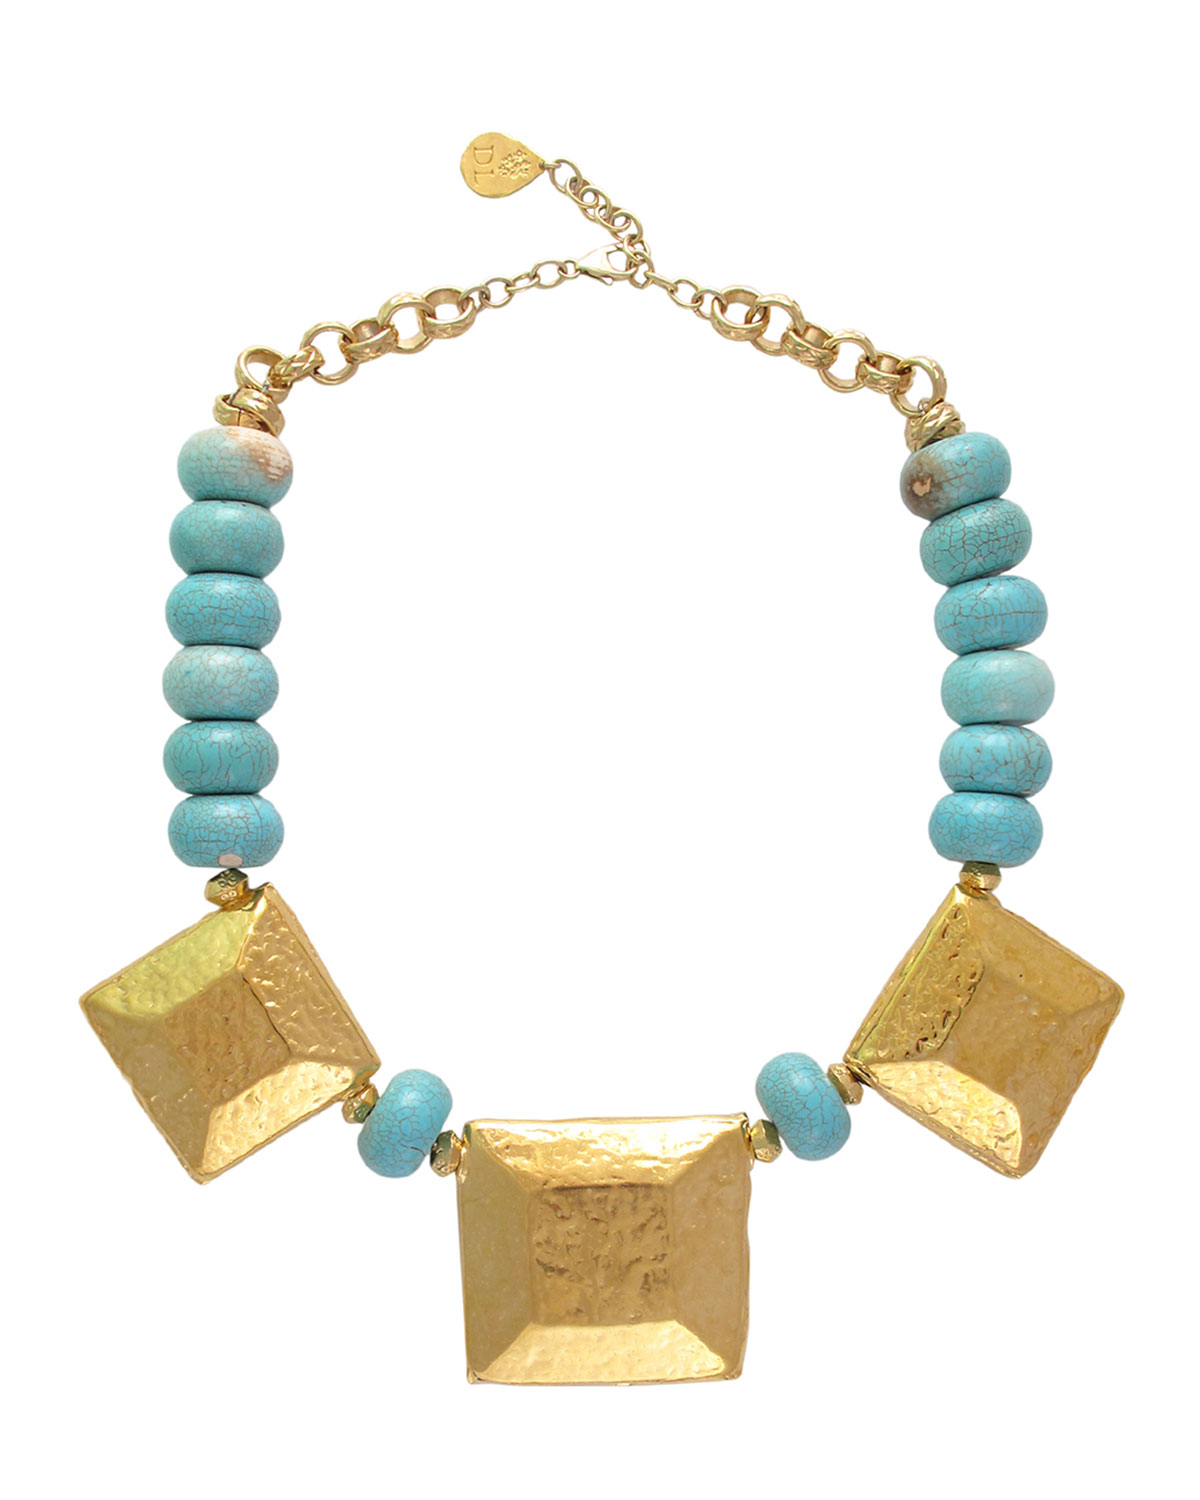 Turquoise and Square Medallion Necklace